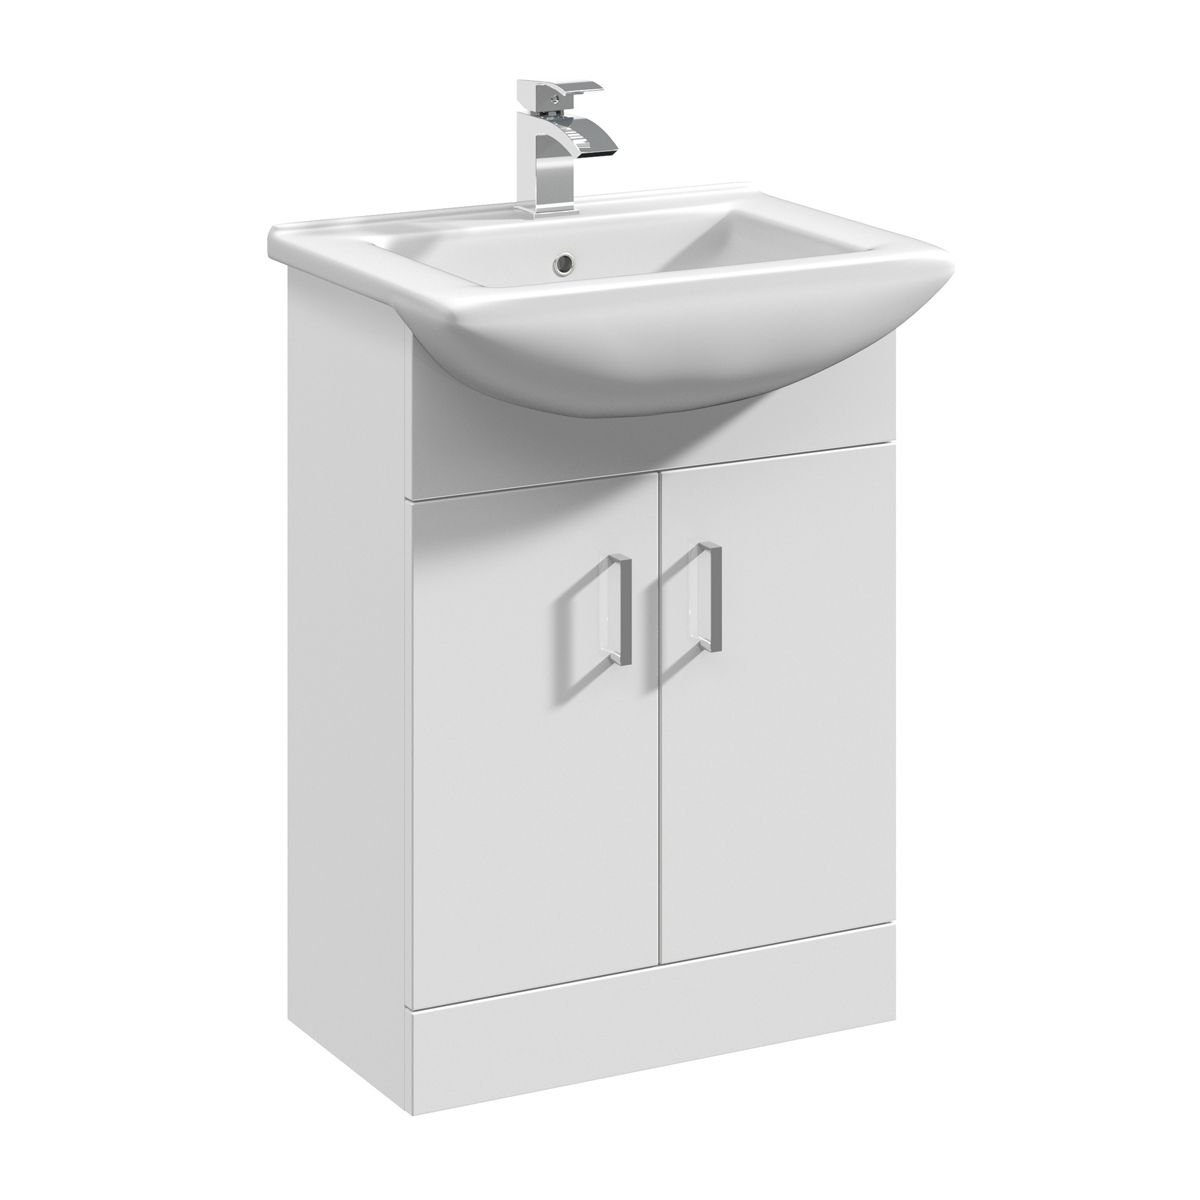 Nuie Deluxe High Gloss White Vanity Unit 550mm